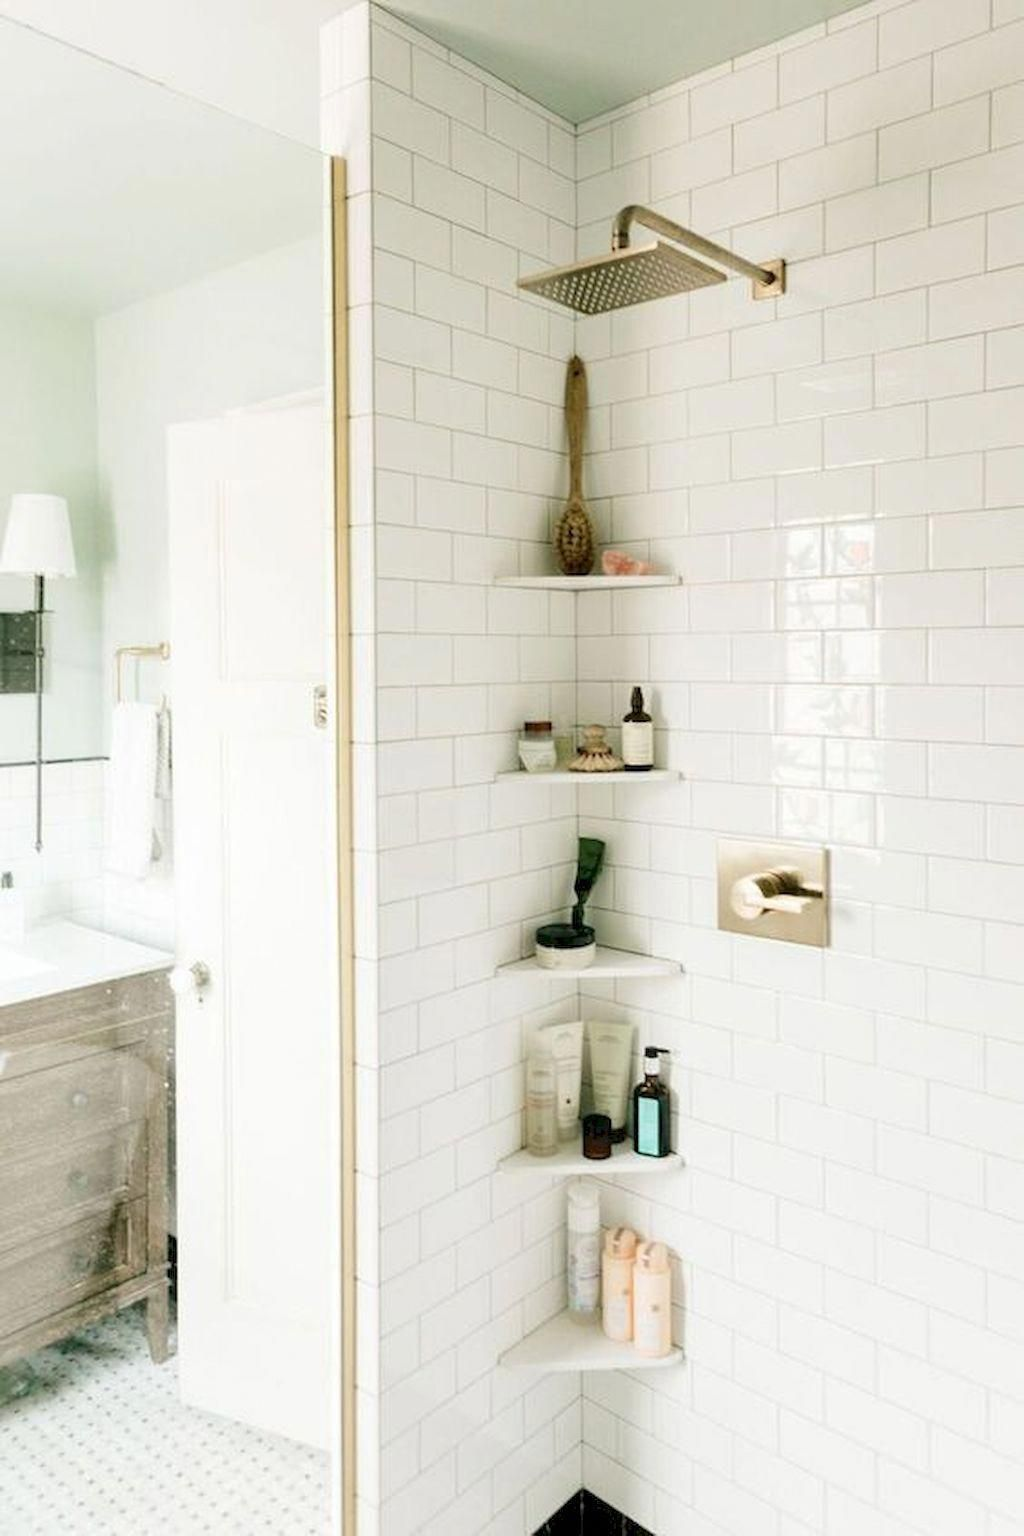 Despite The Reality That Different Bathroom Remodeling Jobs Often